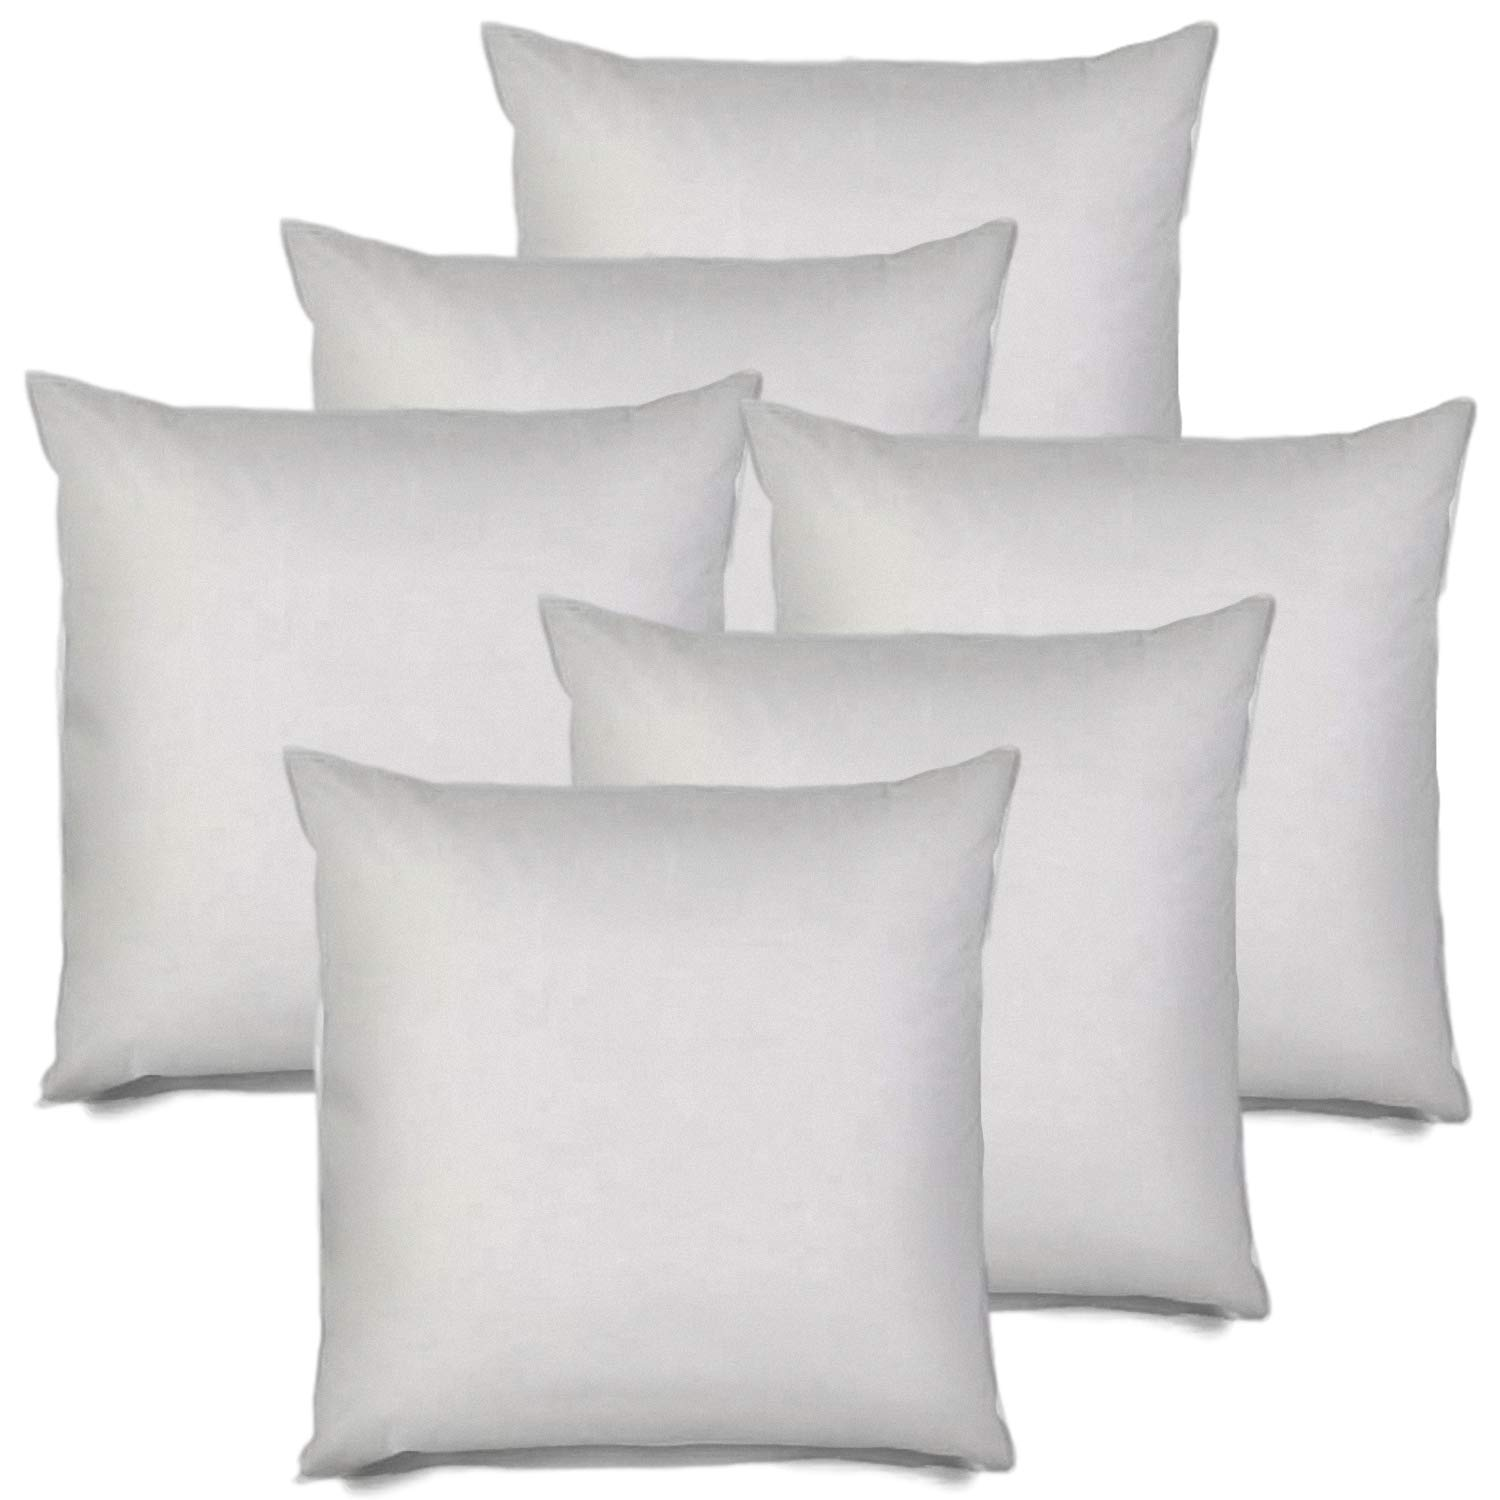 MSD 6 Pack Pillow Insert 20X20 Hypoallergenic Square Form Sham Stuffer Standard White Polyester Decorative Euro Throw Pillow Inserts for Sofa Bed - Made in USA (Set of 6) - Machine Washable and Dry